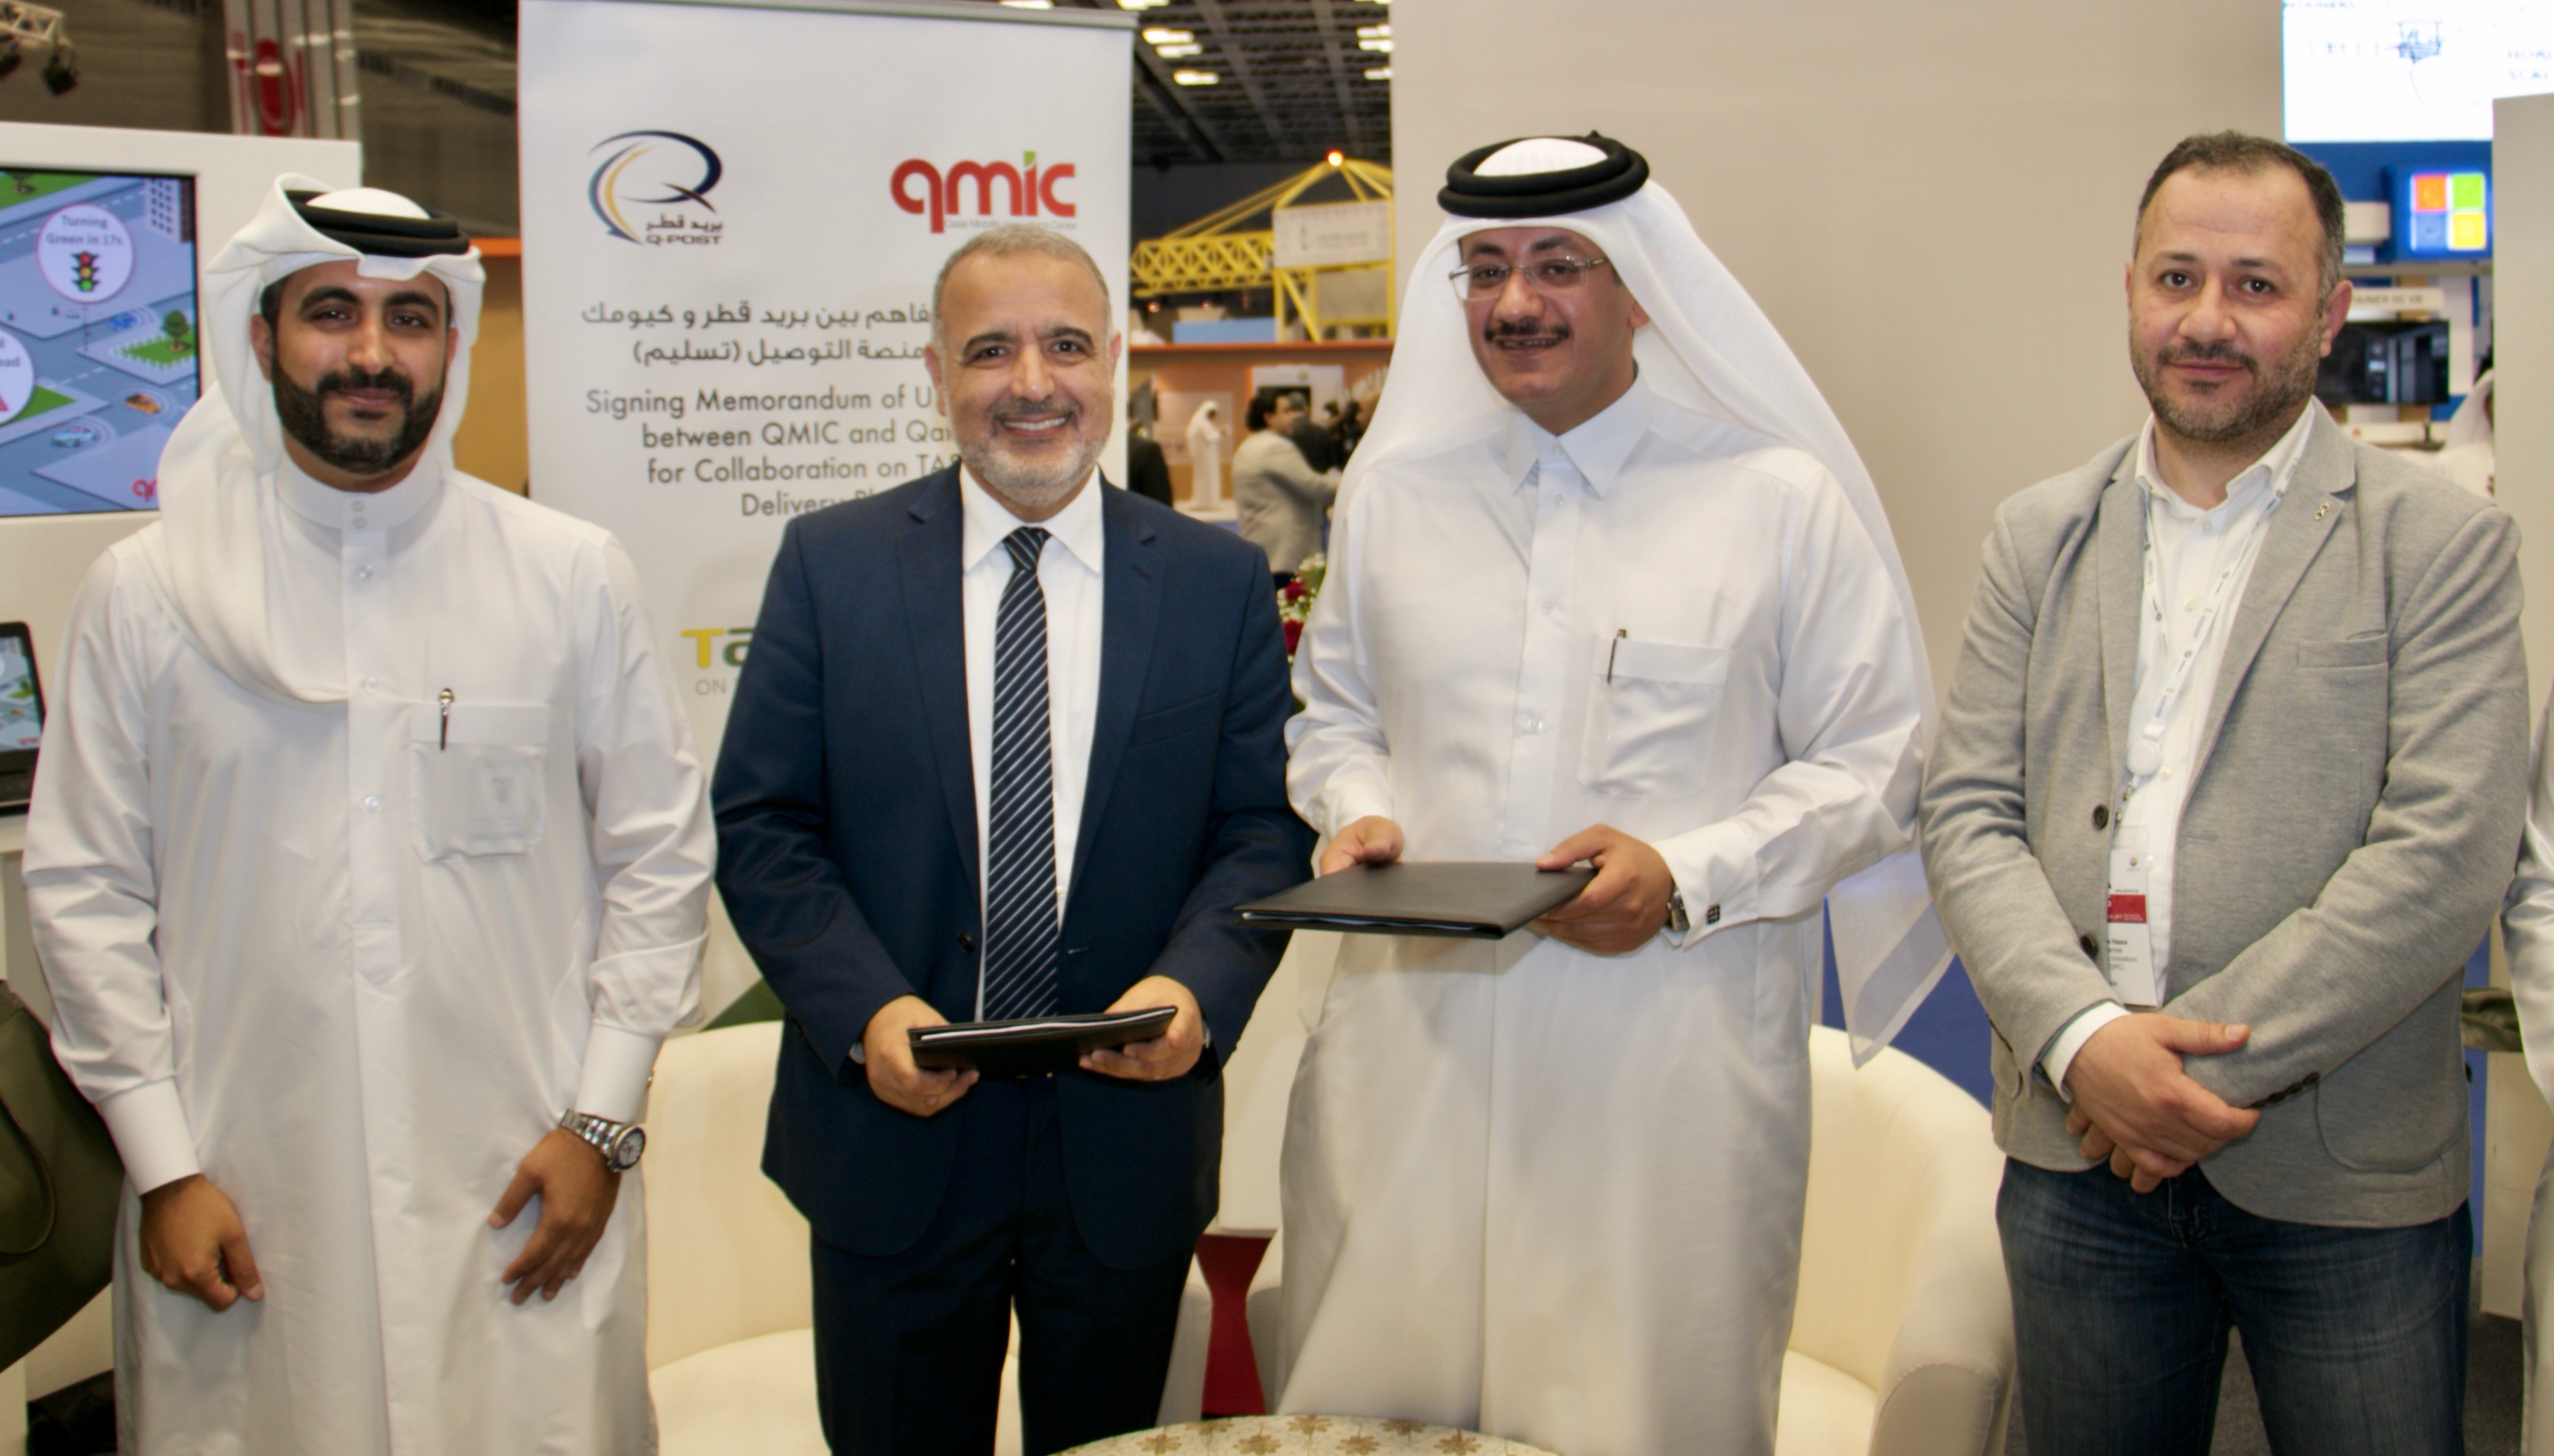 Q-Post and QMIC Sign Agreement to Collaborate on Introducing On-demand Local Delivery Platform (Tasleem